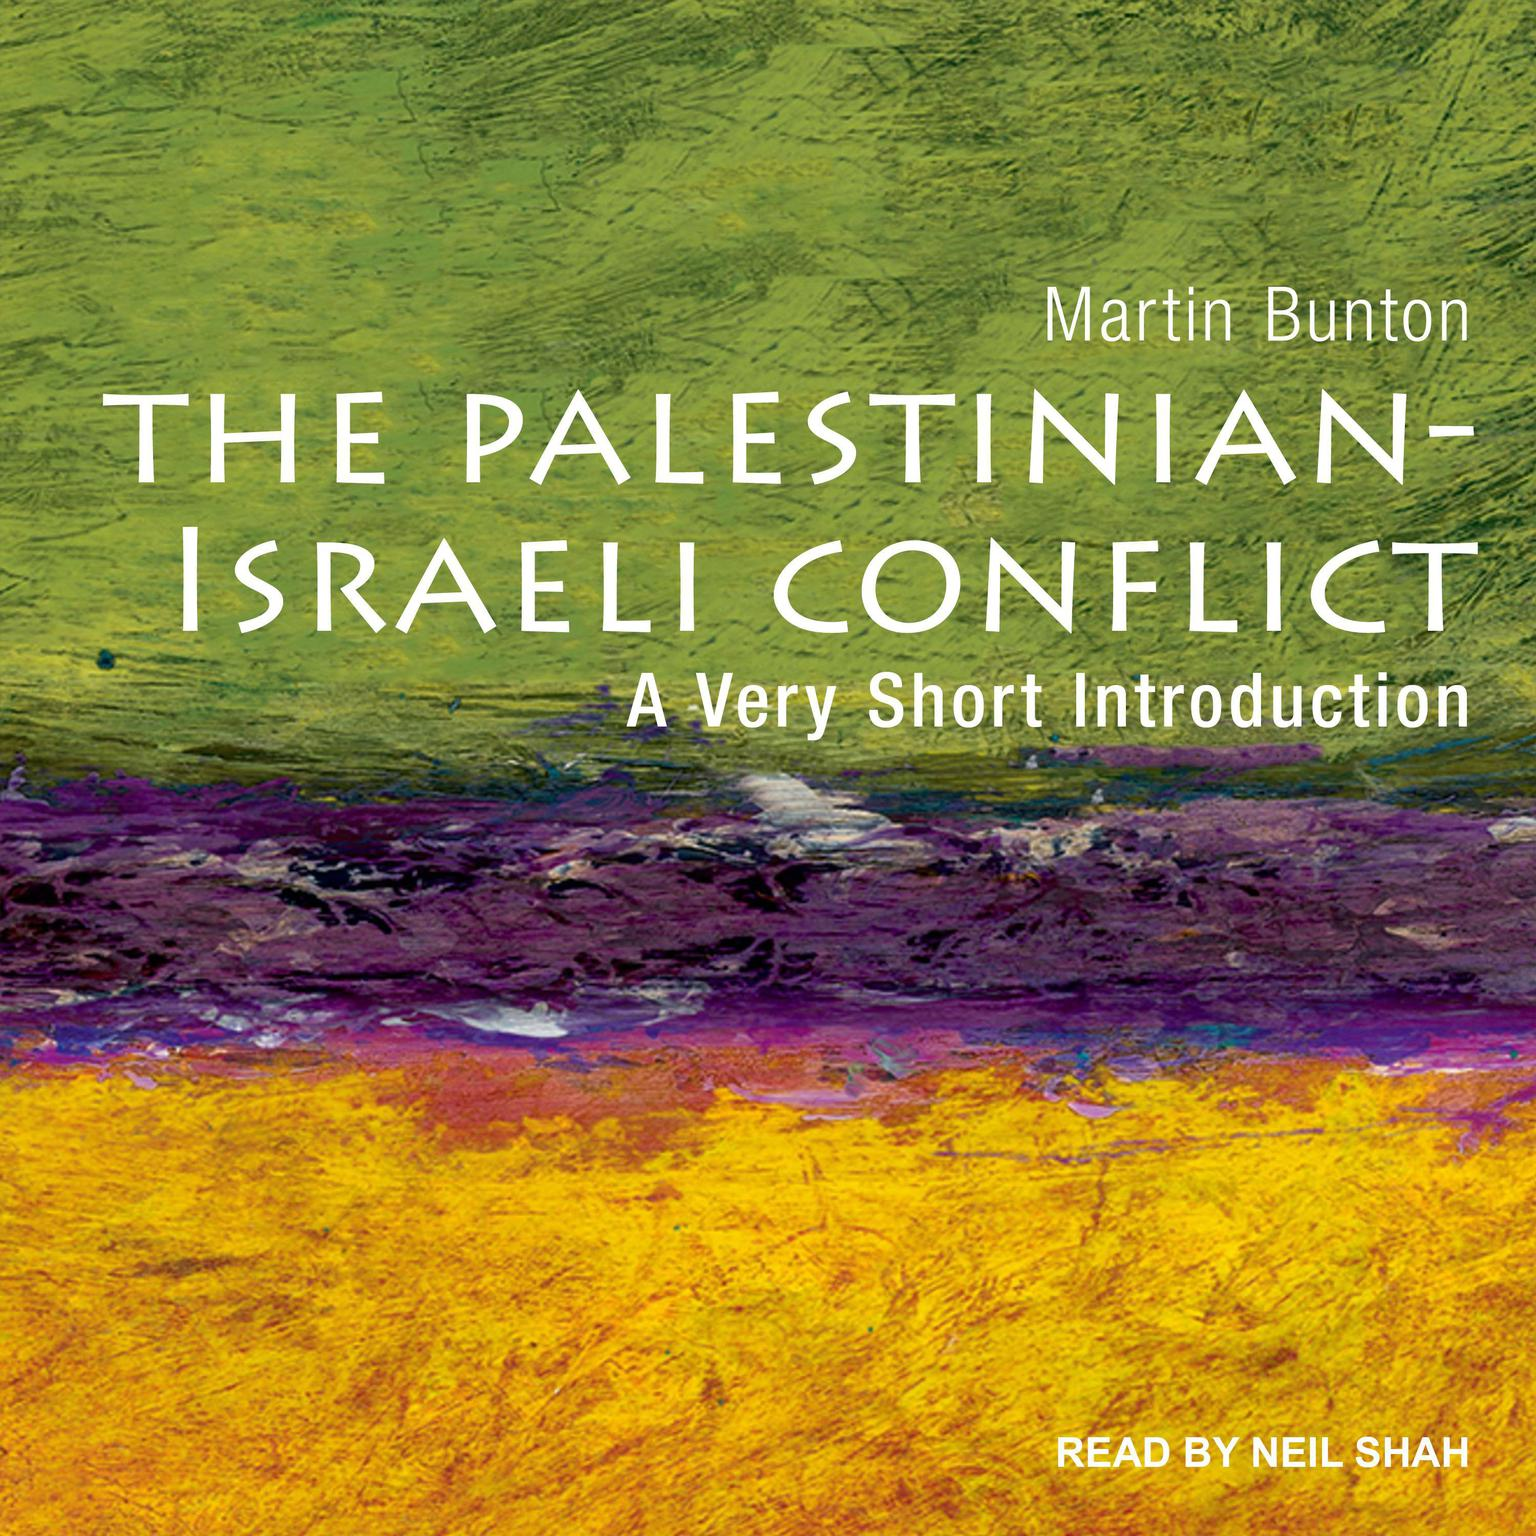 Palestinian-Israeli Conflict: A Very Short Introduction Audiobook, by Martin Bunton